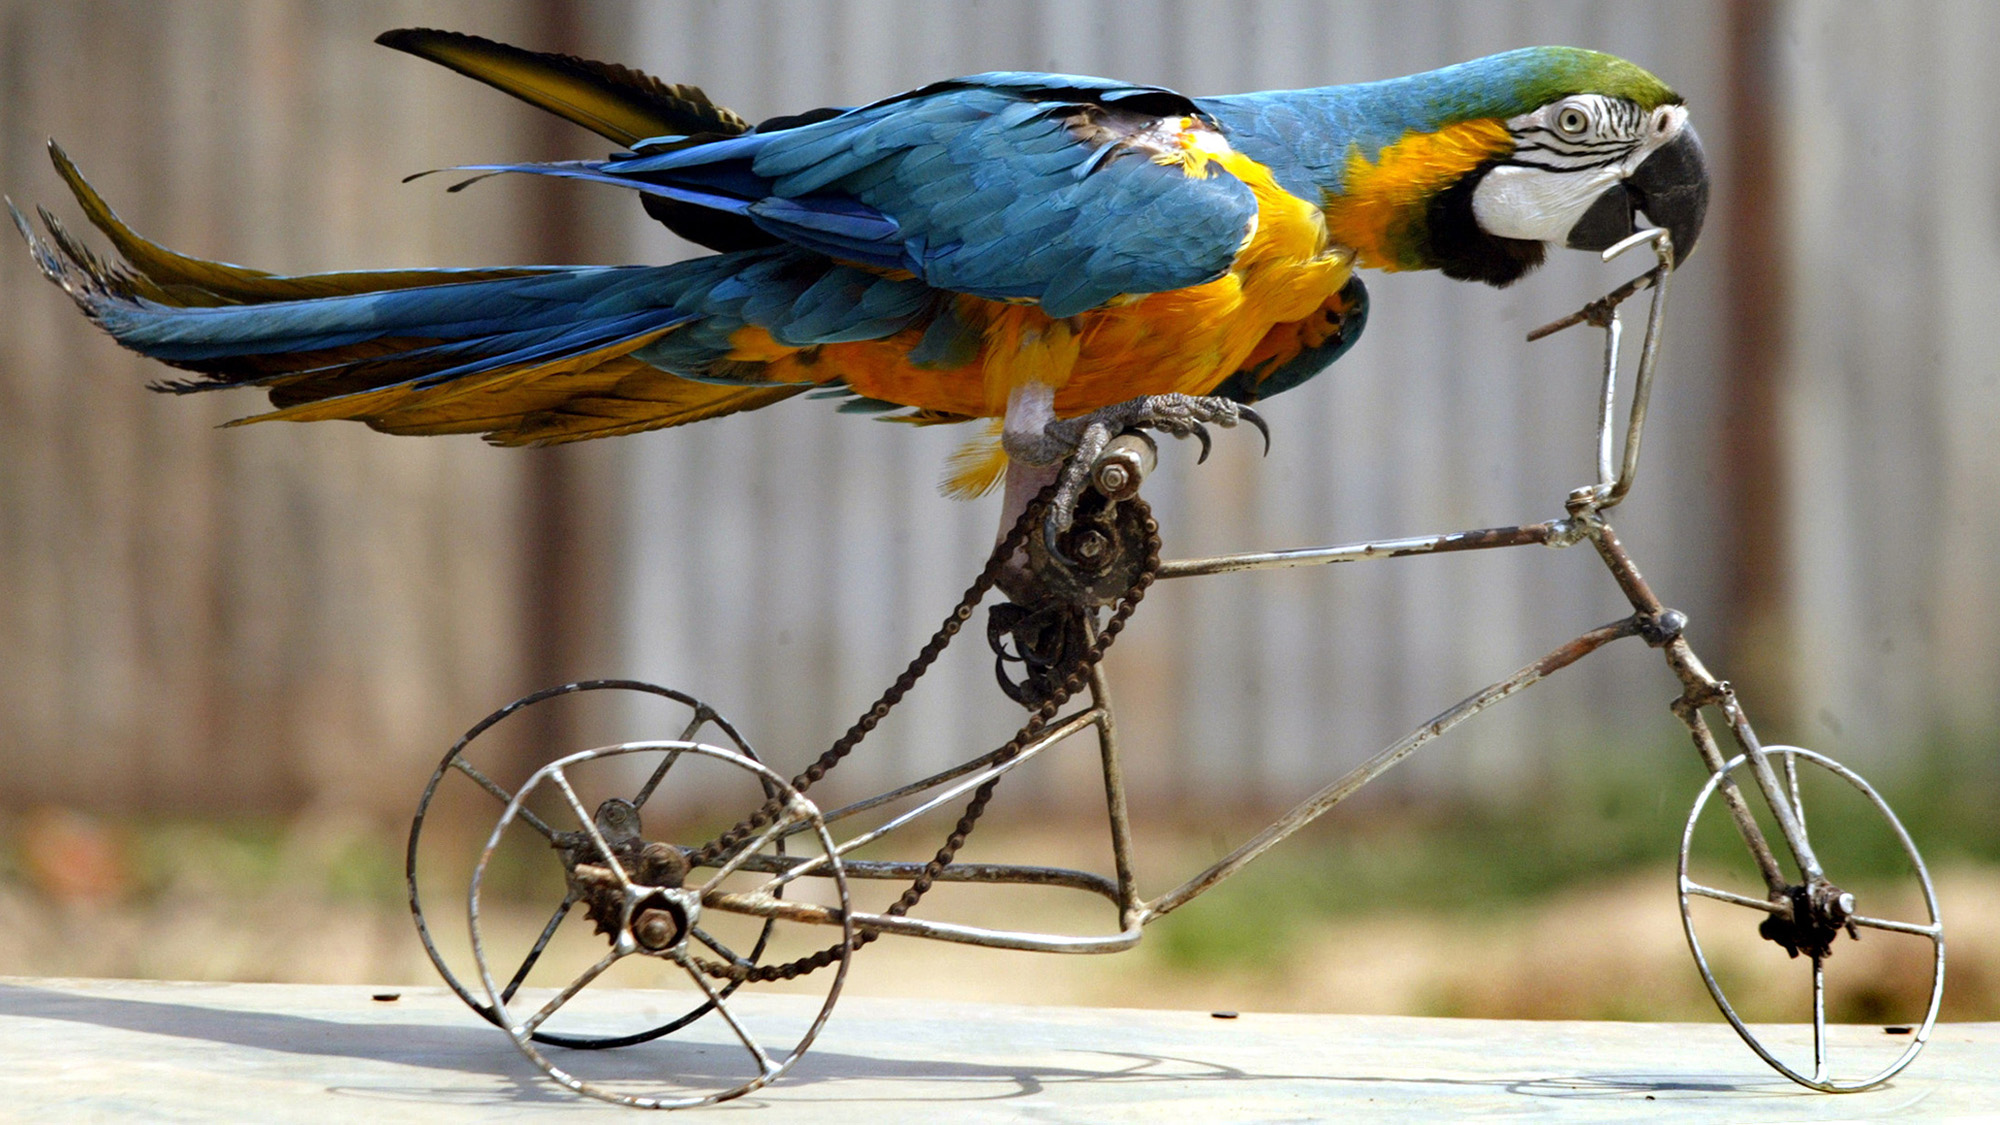 A circus macaw parrot rides a toy bicycle in the northern Indian city of Chandigarh October 10, 2005. REUTERS/Ajay Verma PP05100222 ODLY Pictures of the month October 2005 - RTR19425